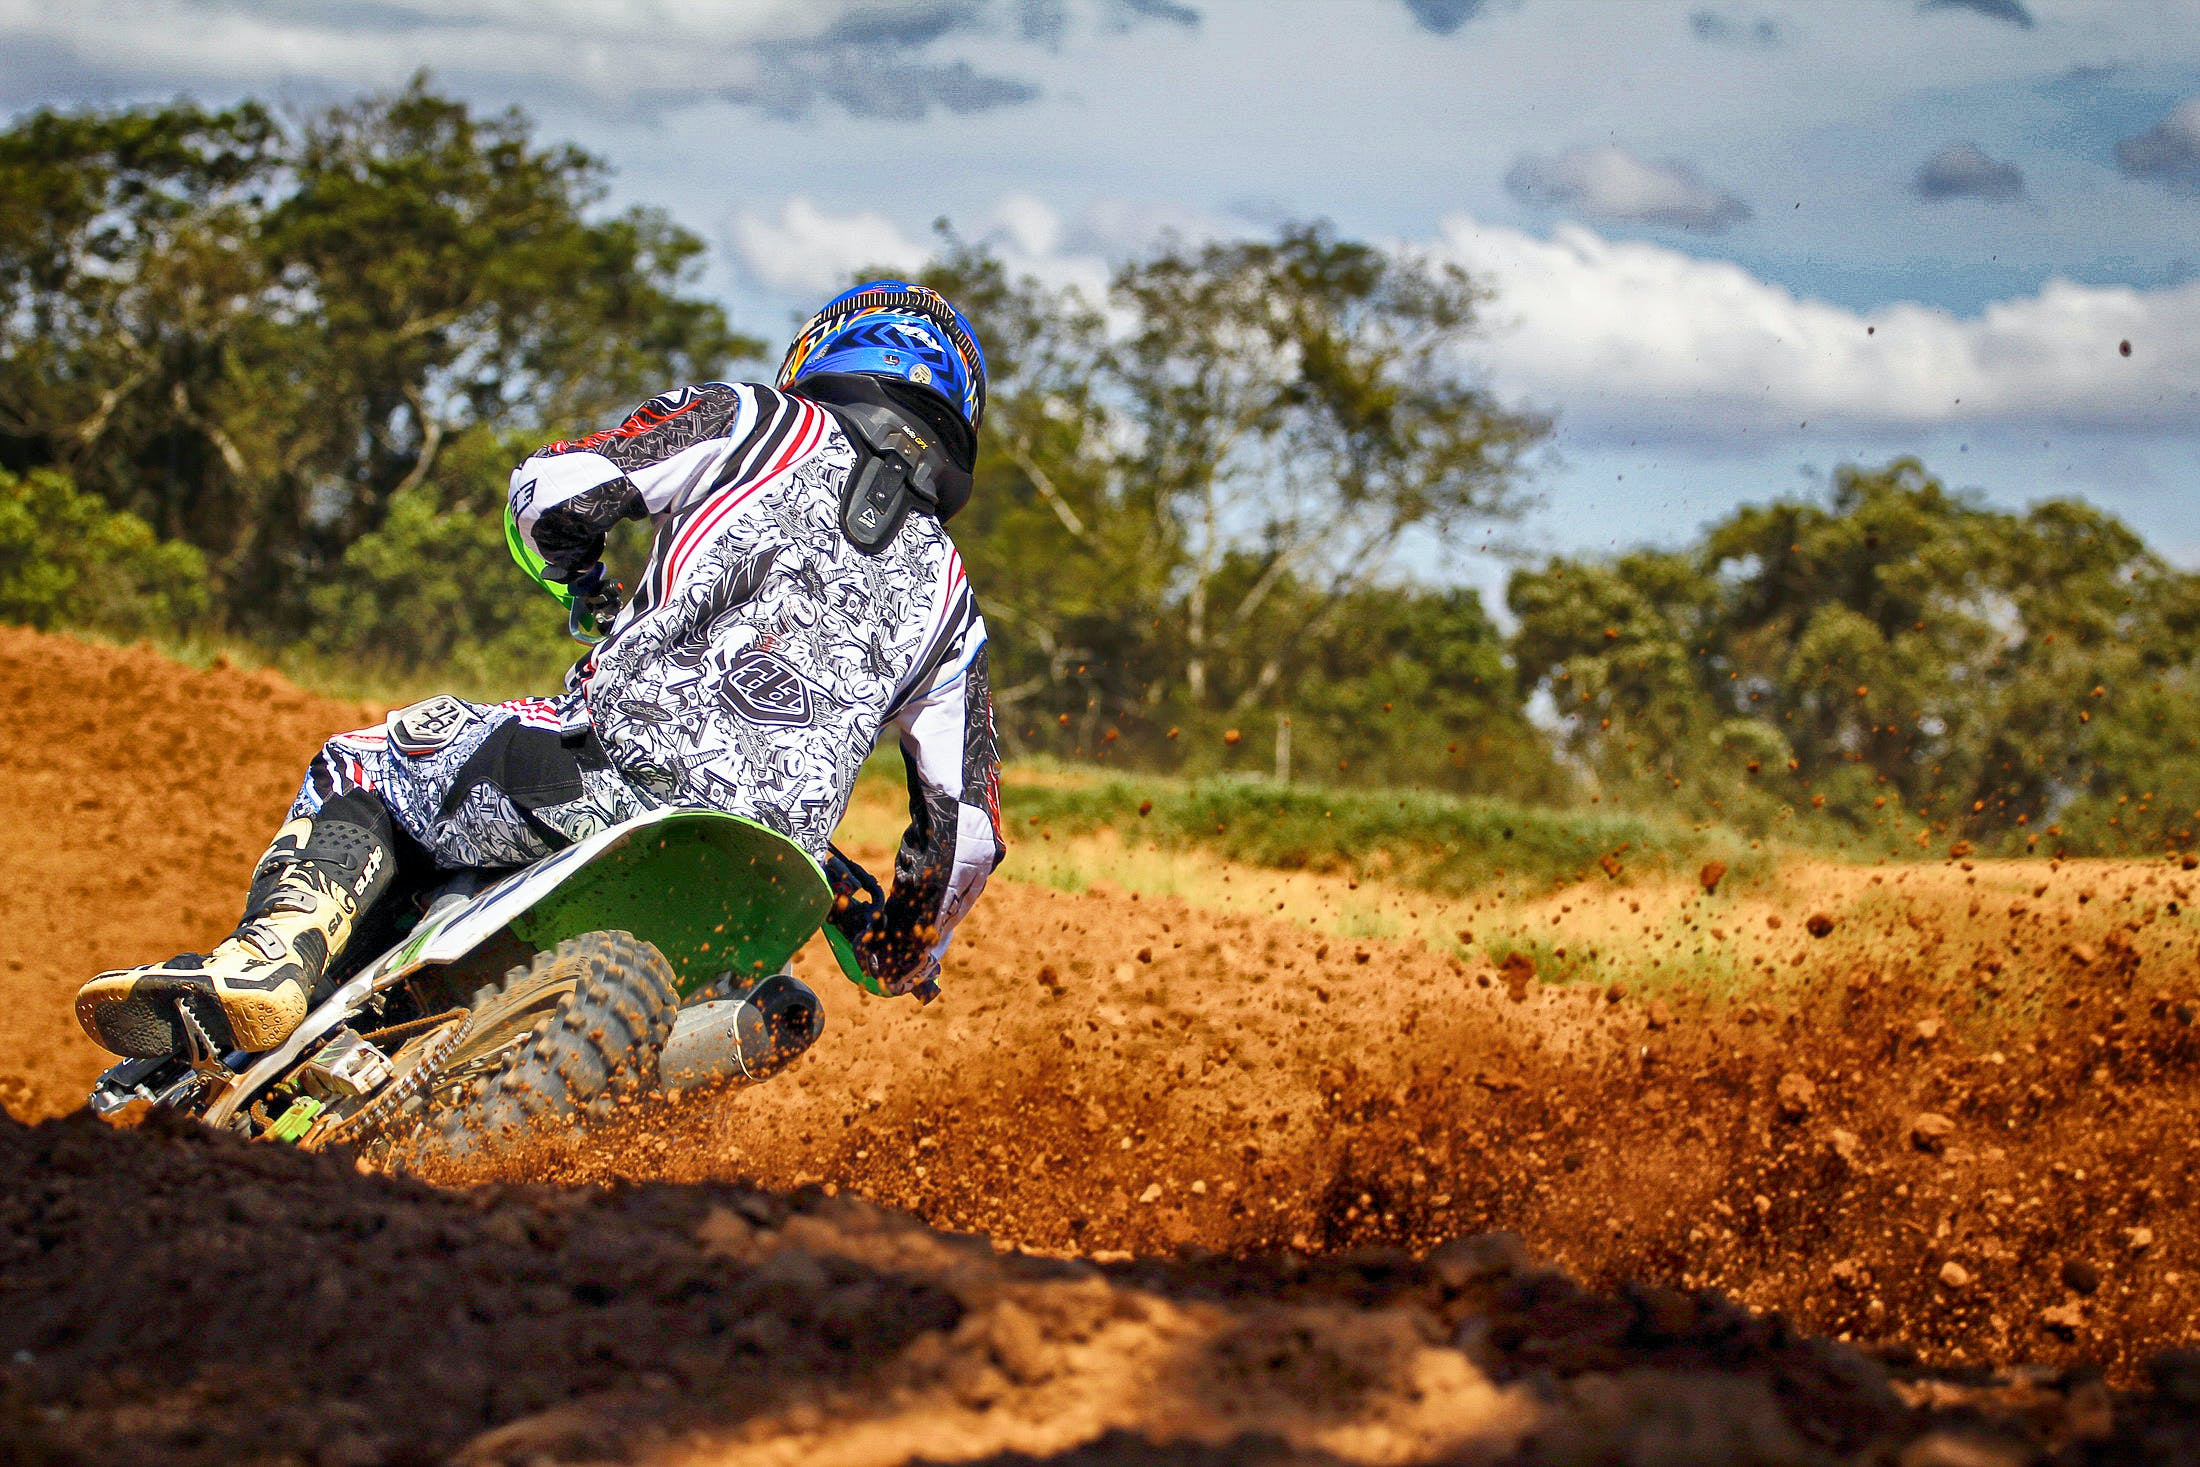 Man Riding Motocross Dirt Bike on Track